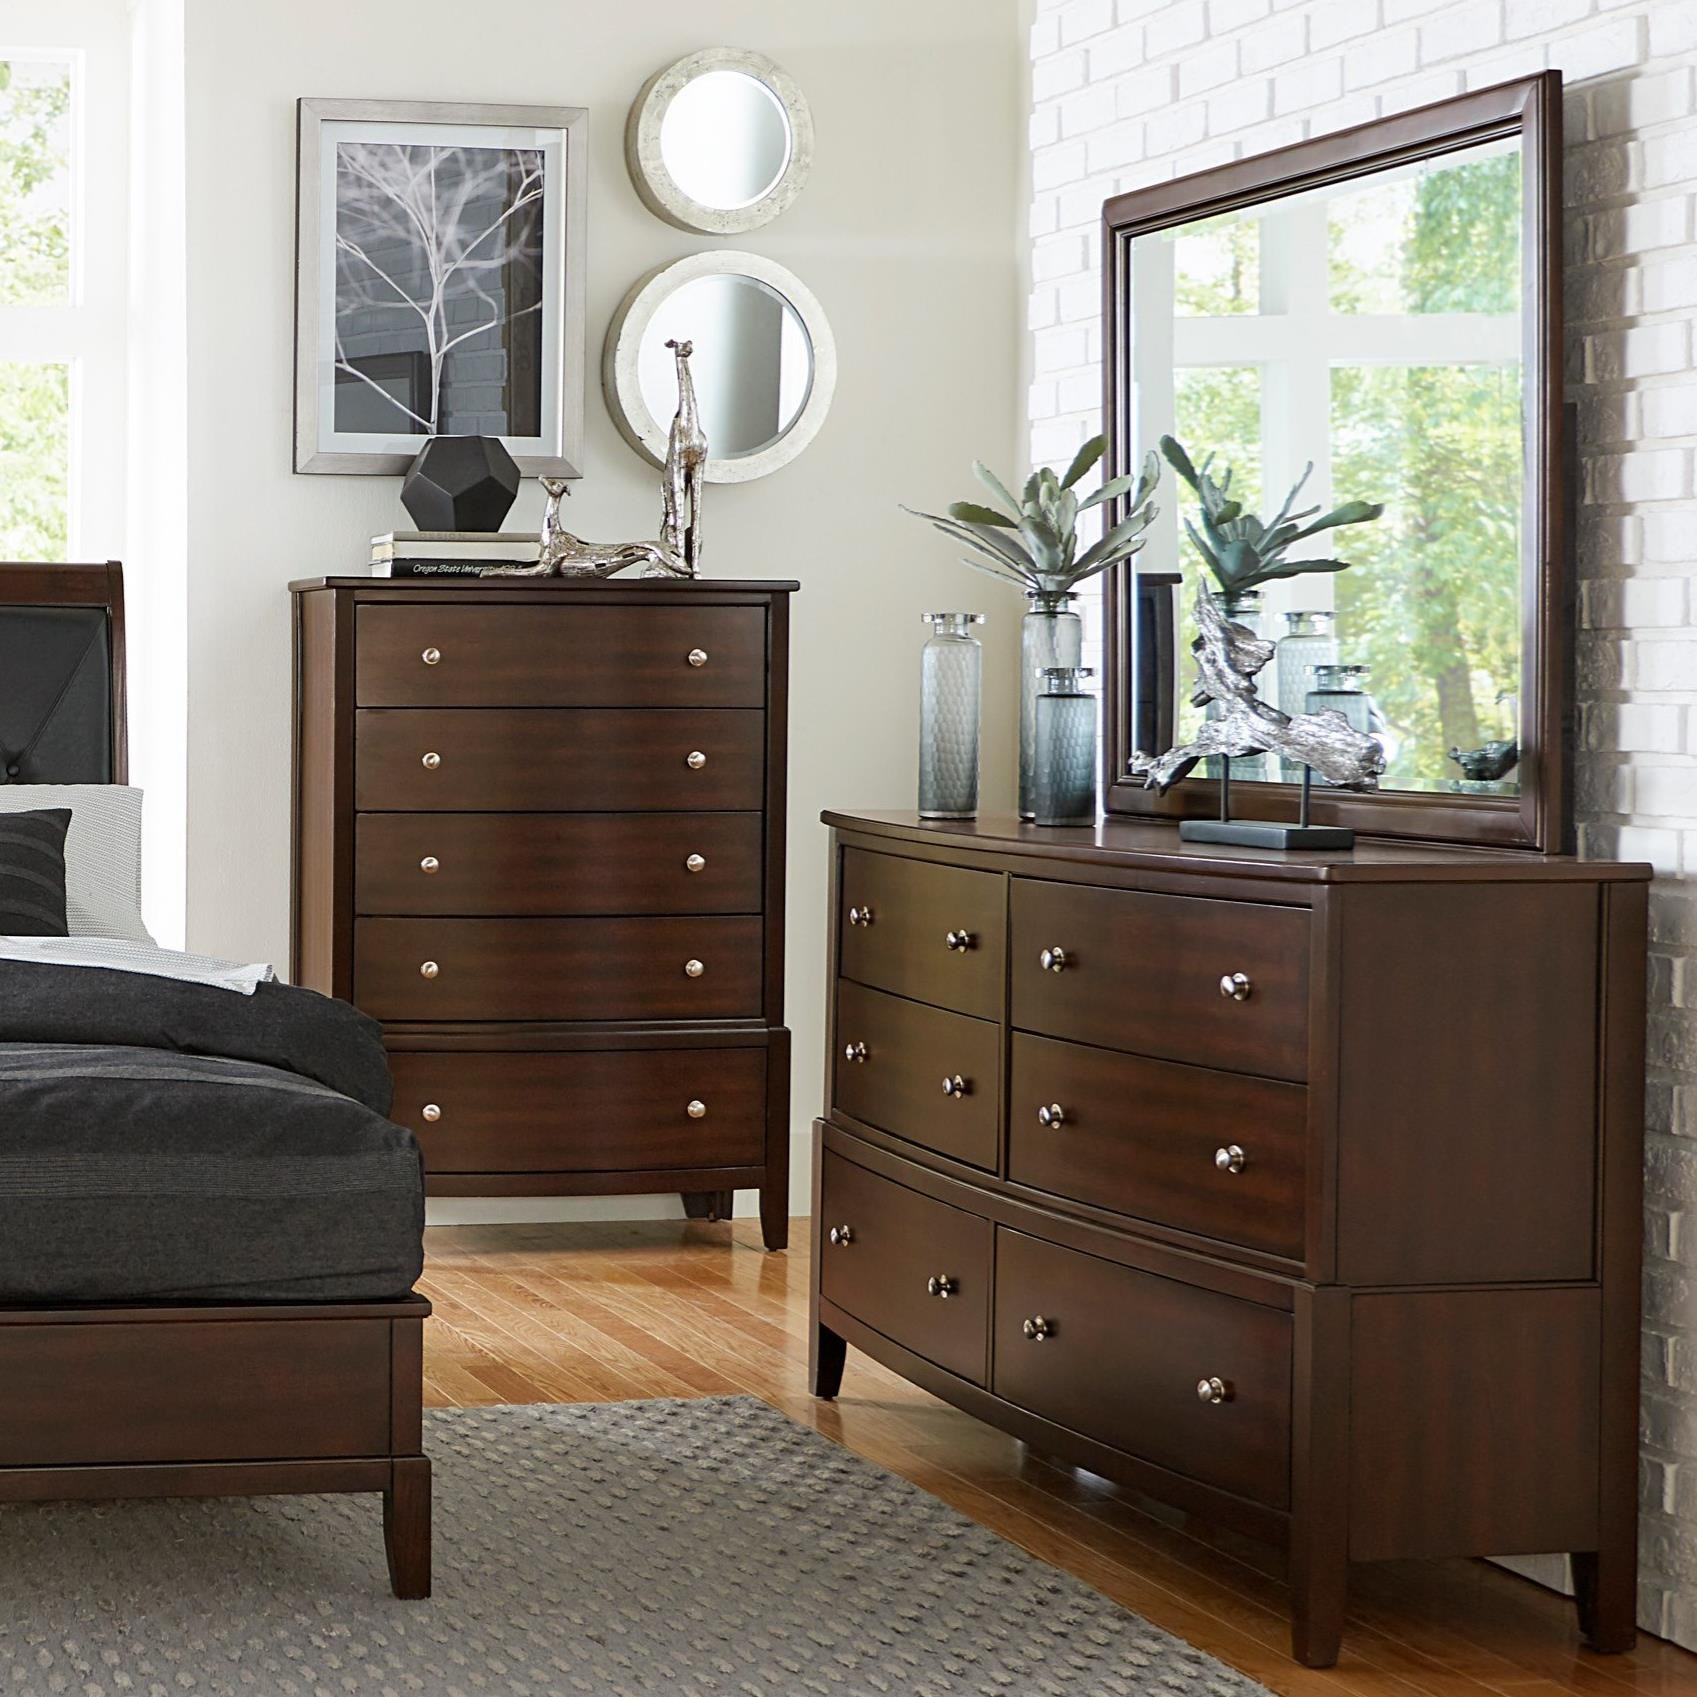 Cotterill Dresser and Mirror Set by Homelegance at Rooms for Less